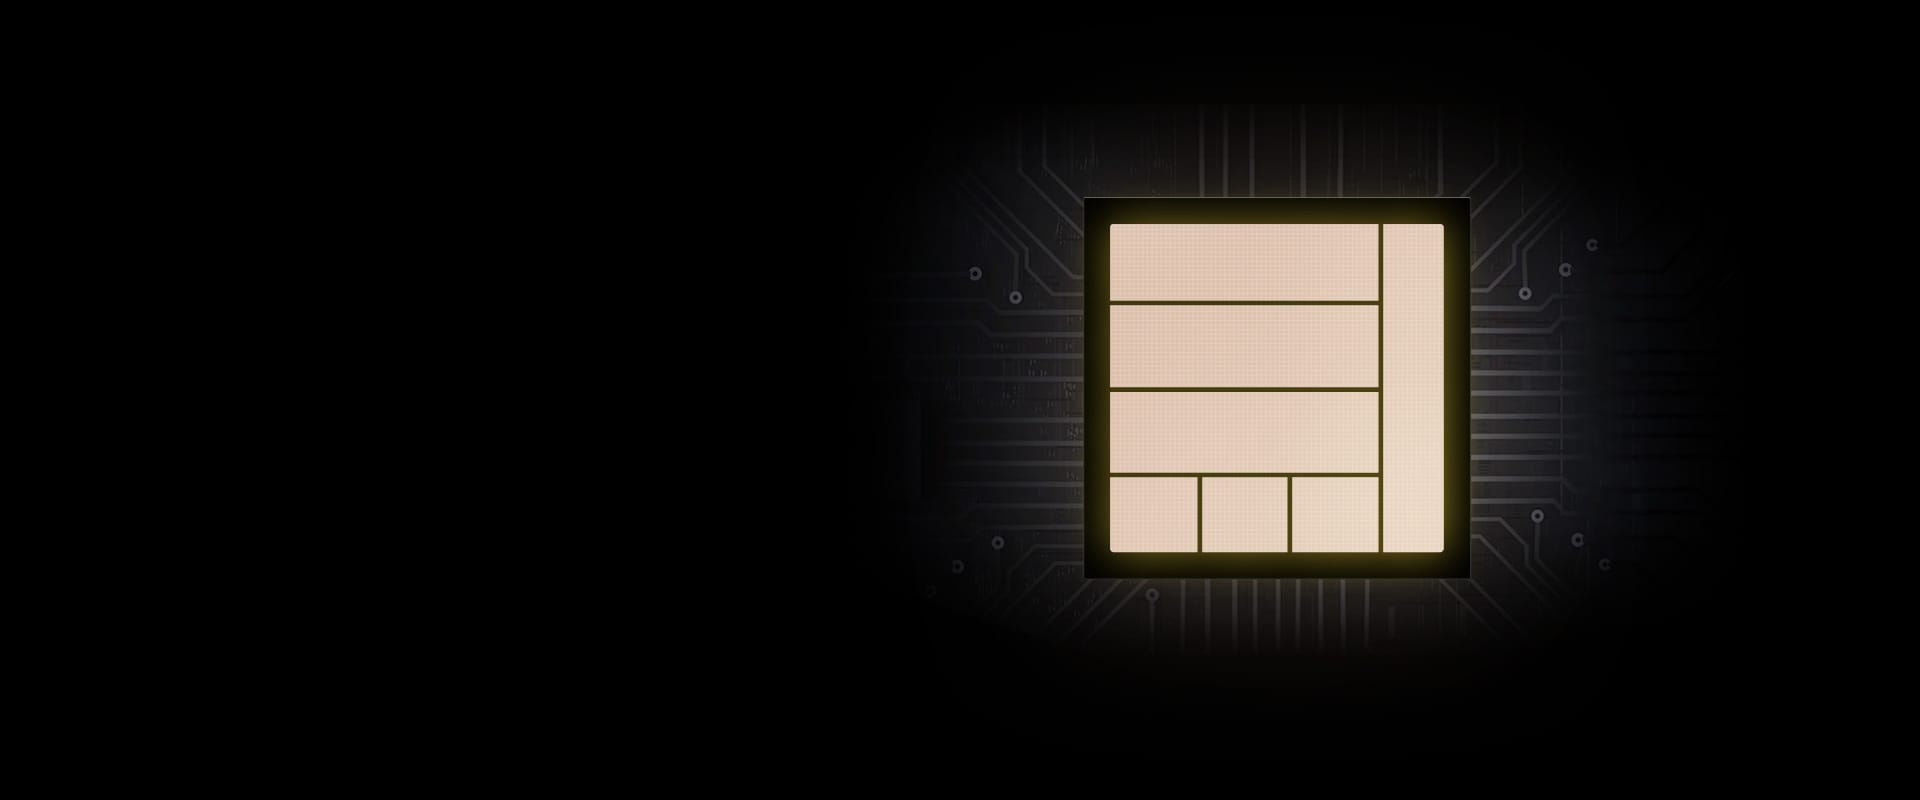 An illustration of a chip providing powerful performance to Galaxy S20 FE 5G.